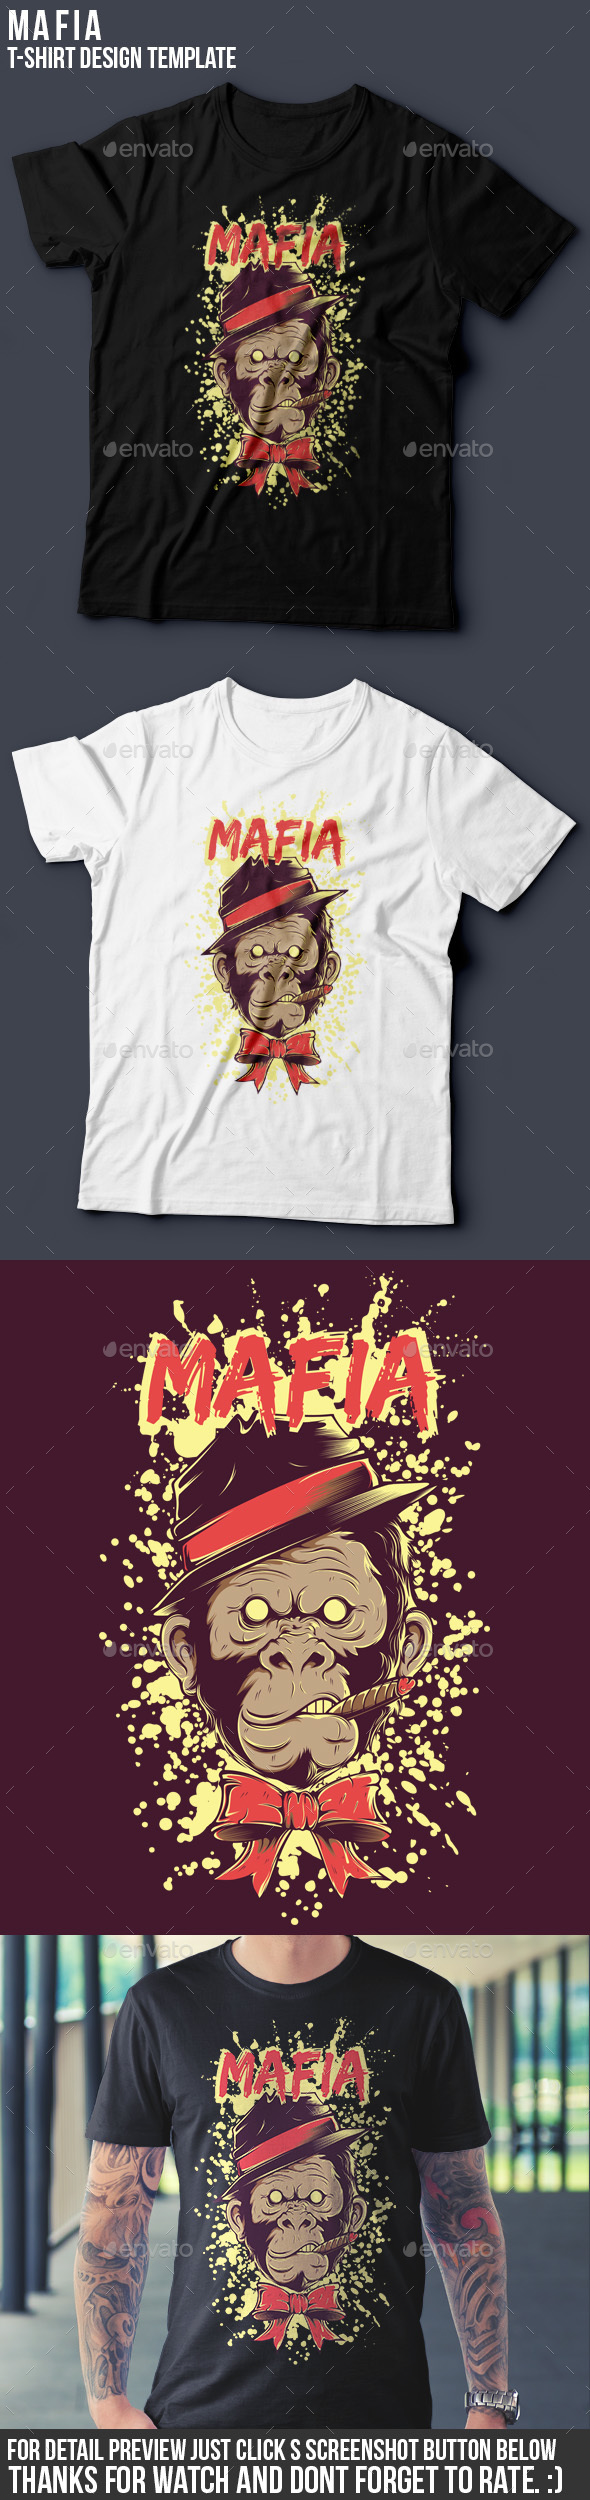 Mafia T-shirt Template